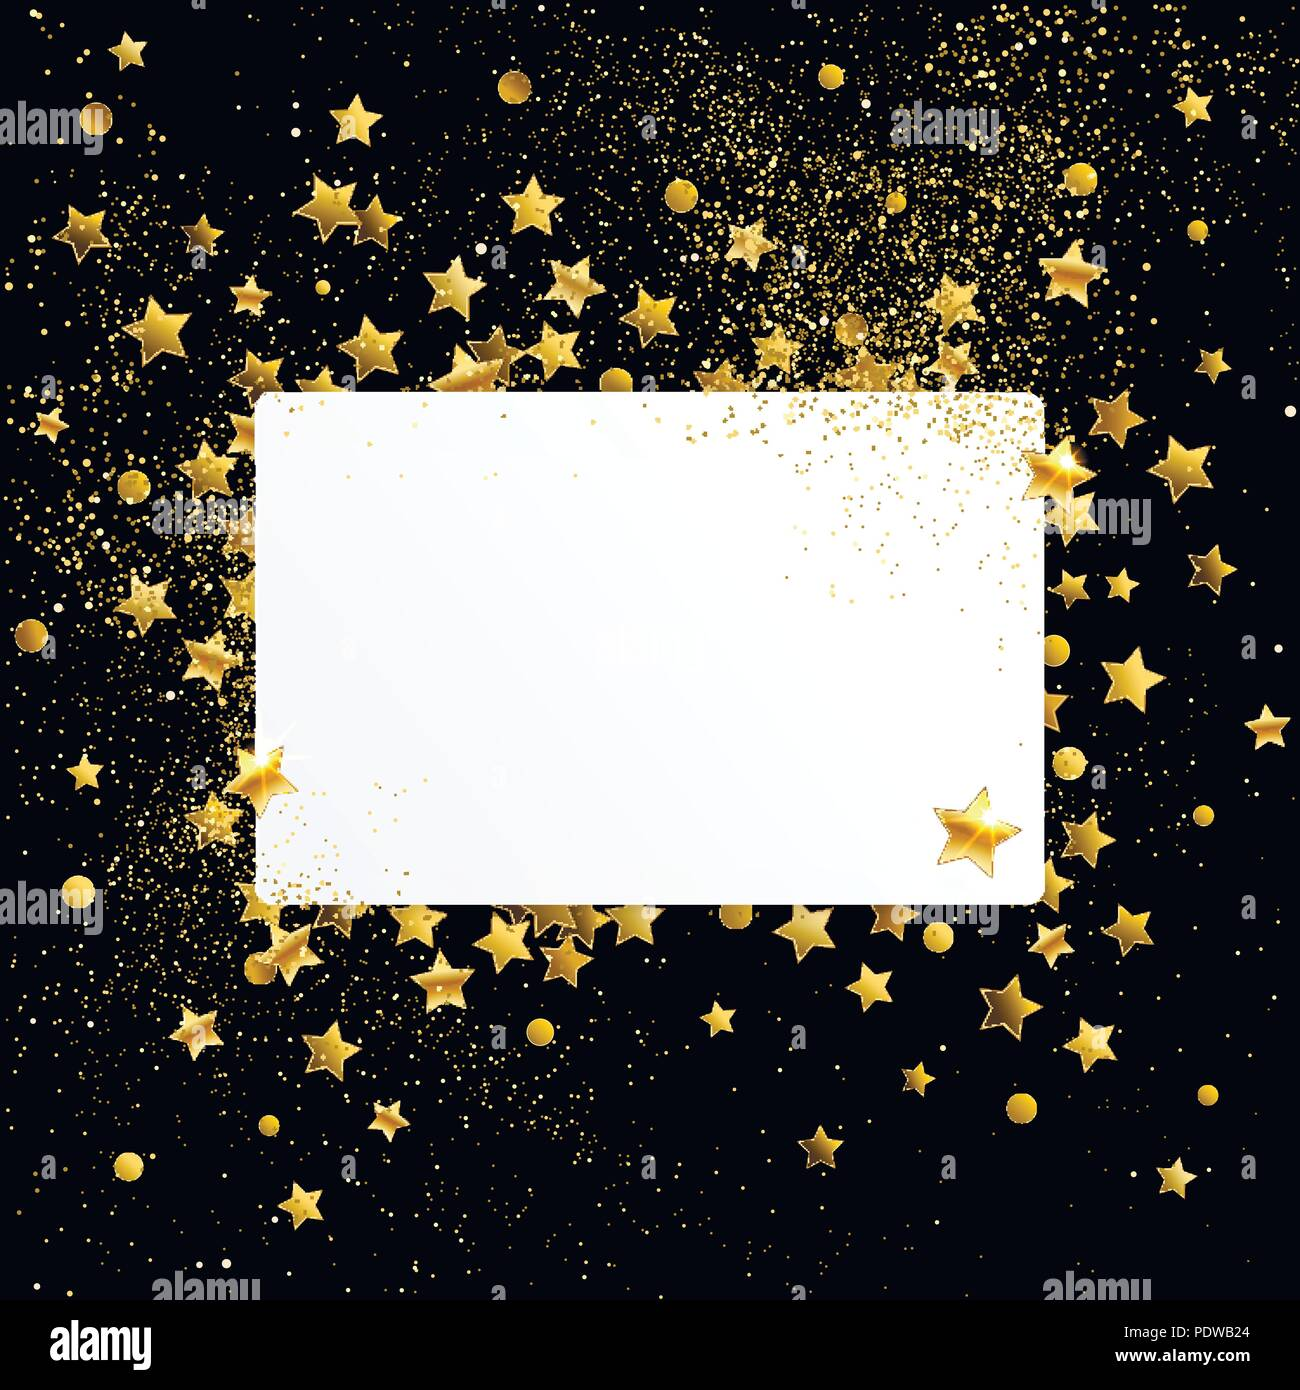 Empty White Banner With Gold Confetti Stars On A Black Background